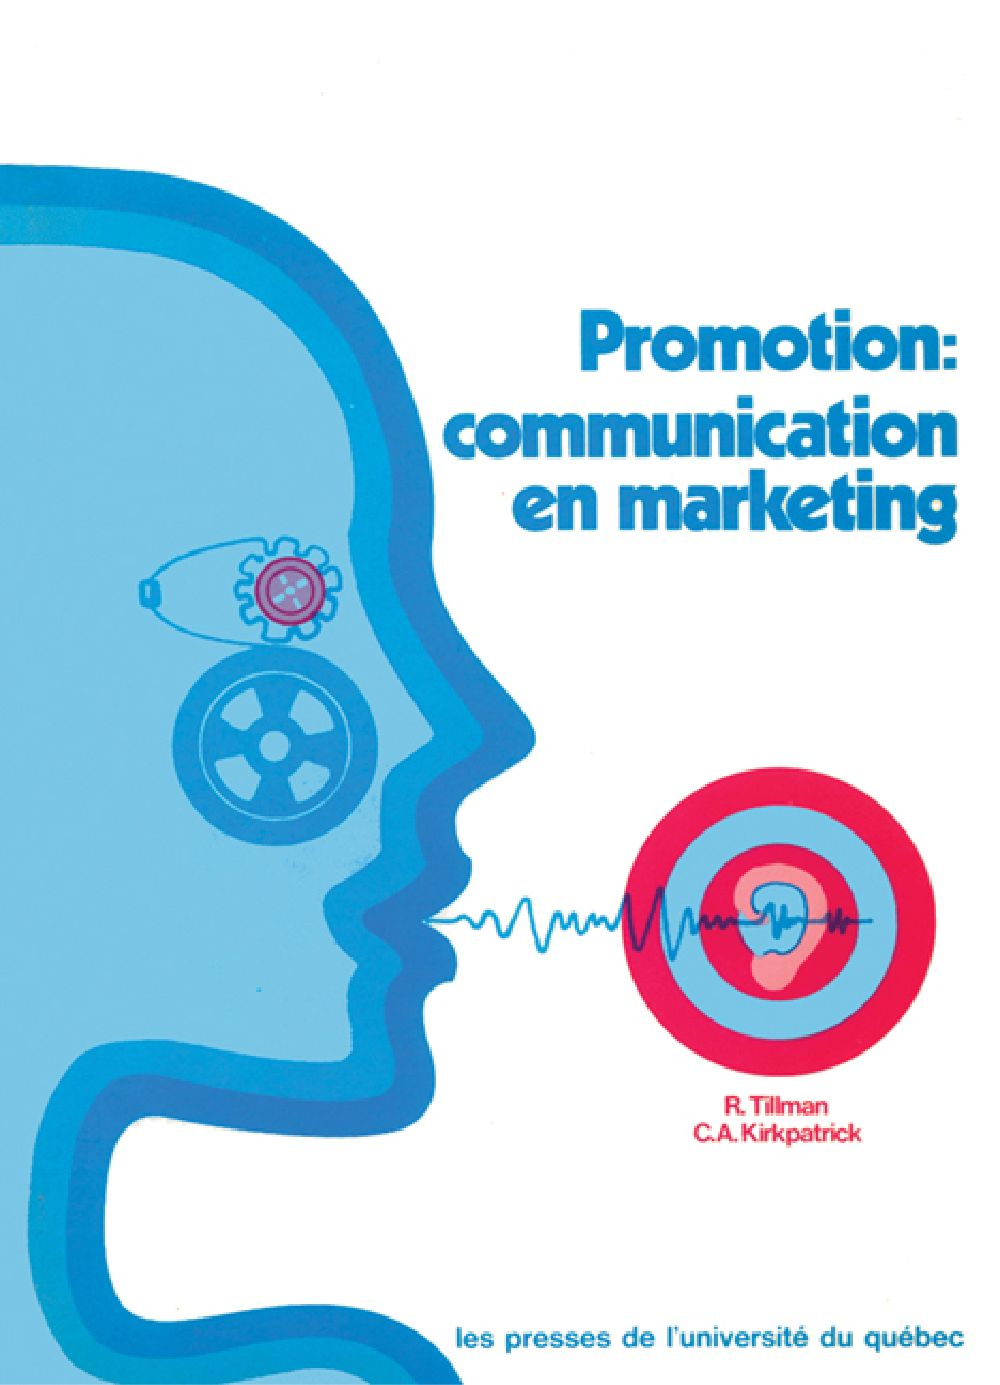 Promotion communication en marketing